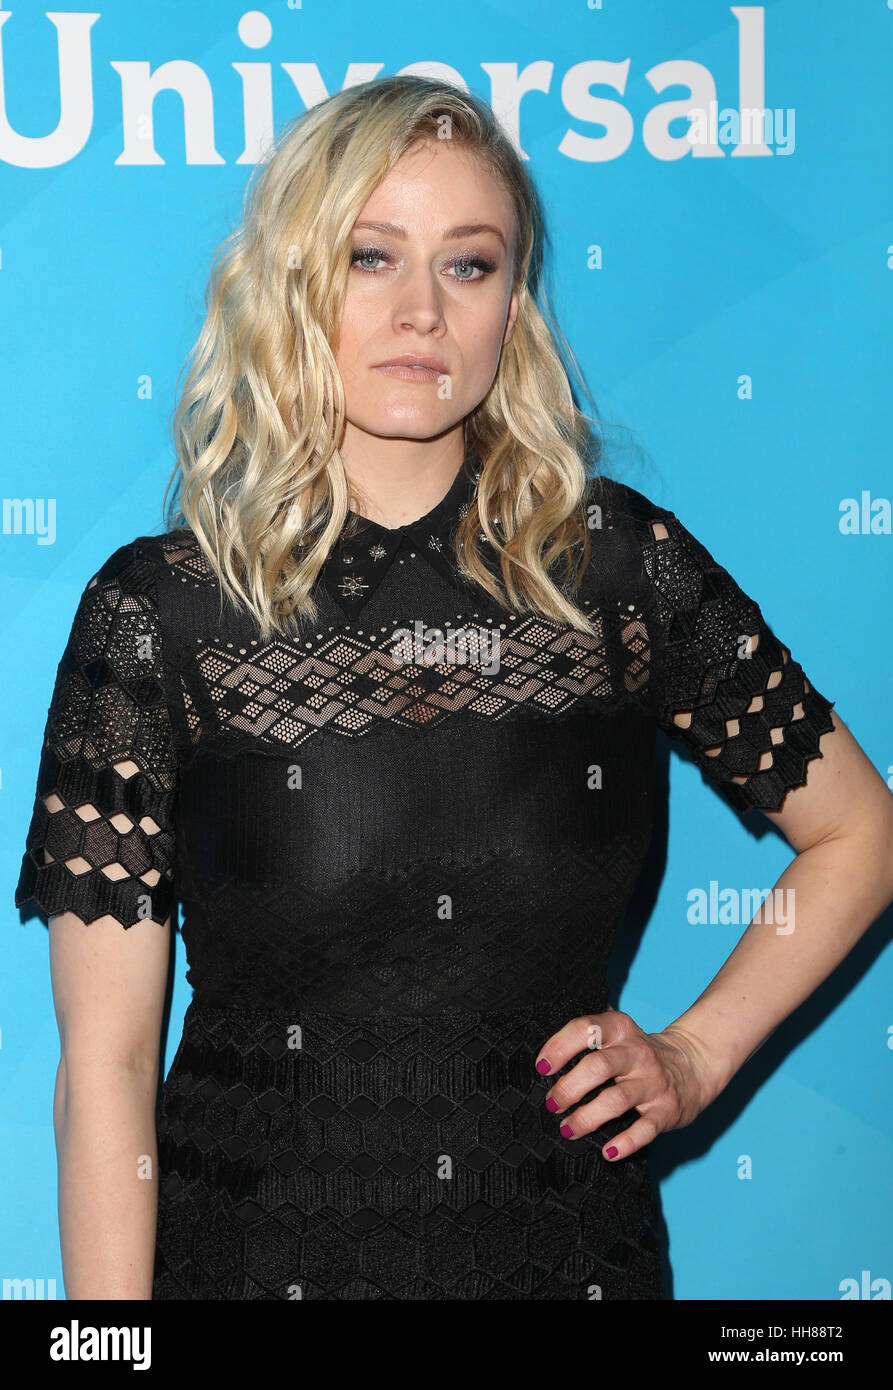 Olivia Taylor Dudley Hot Bikini Images, Topless Photos Gallery